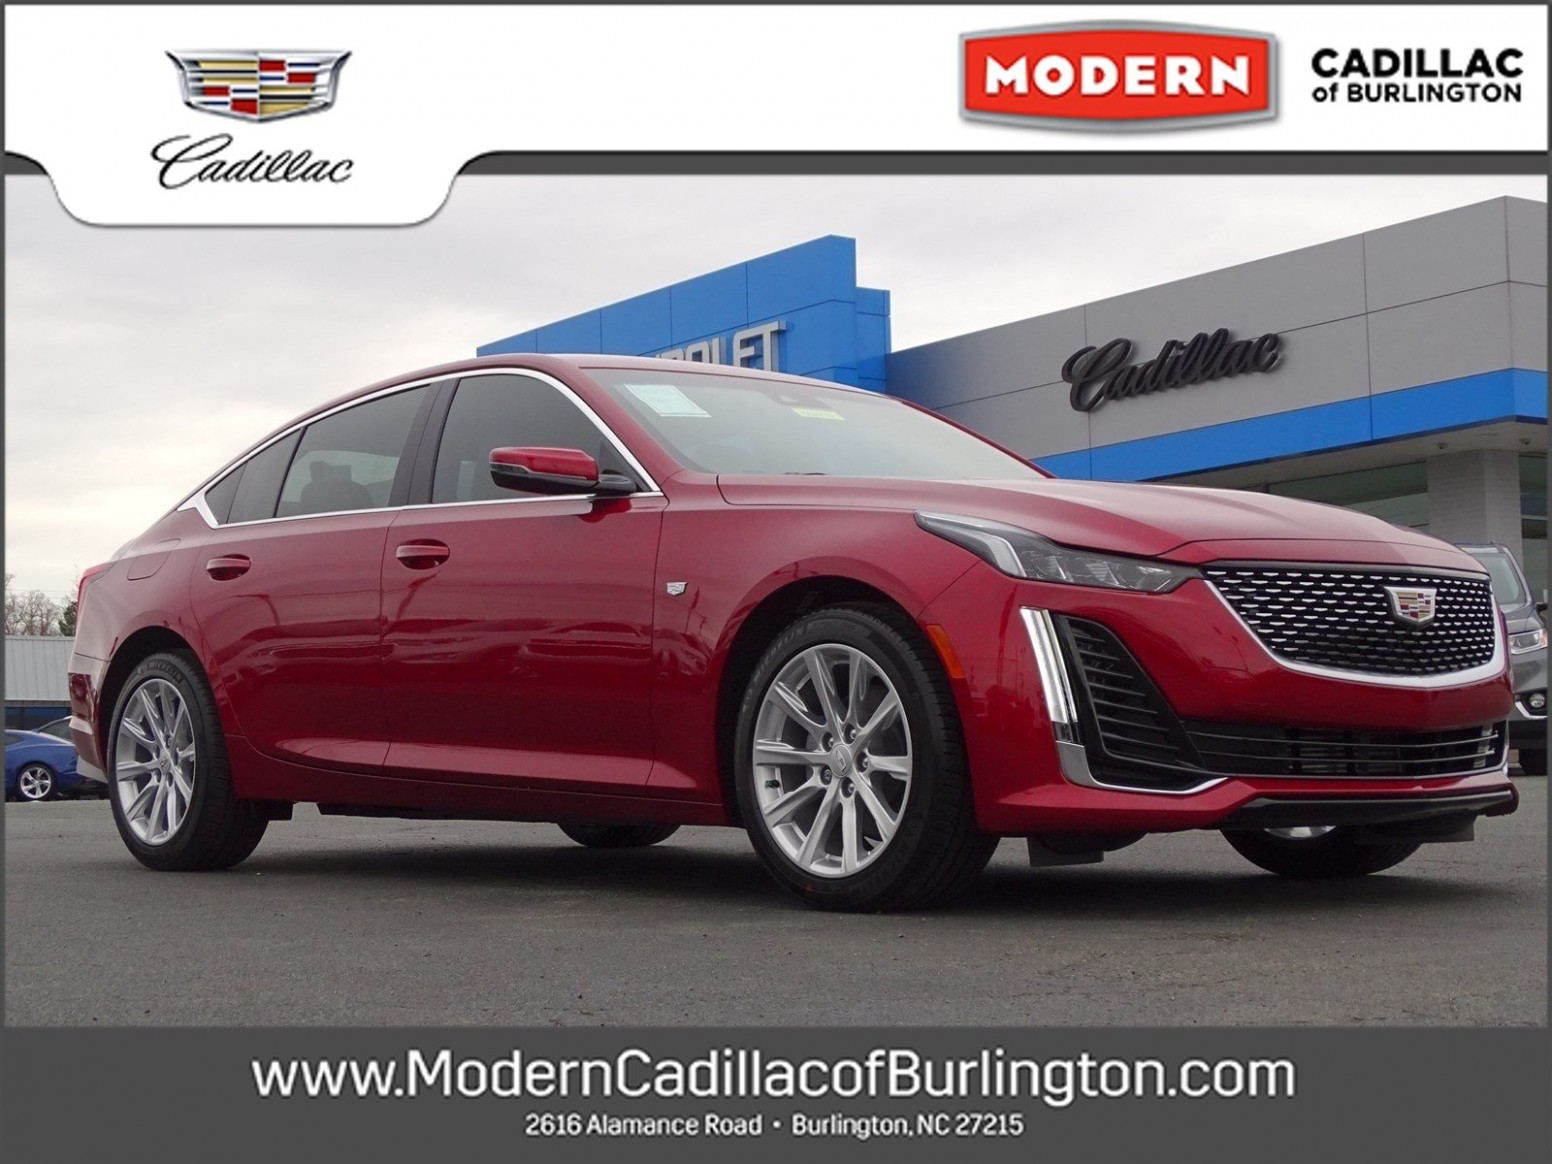 7 Cadillac CT7 for Sale - Autotrader - 2020 cadillac for sale